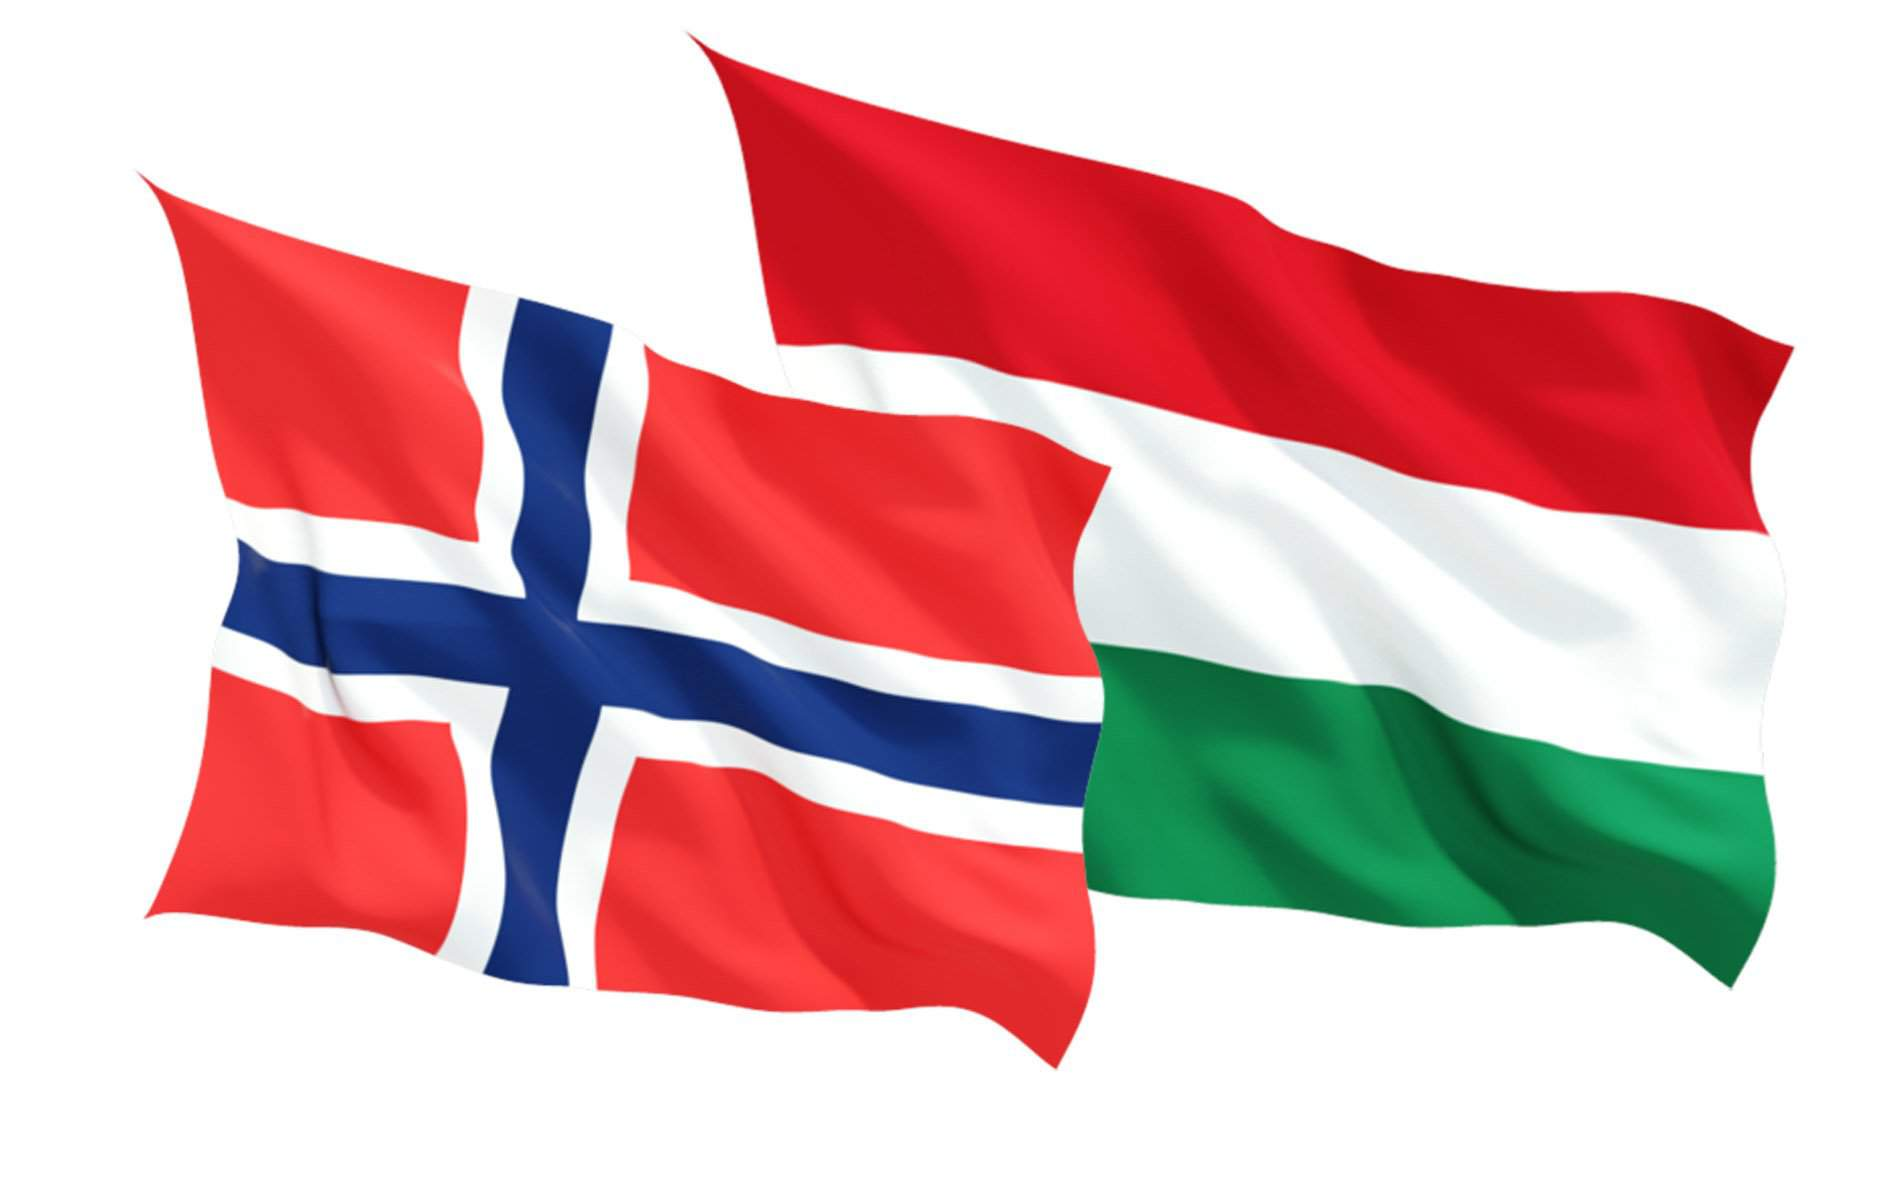 Referendum – Hungarian, Norwegian Liberals campaign for 'yes' vote